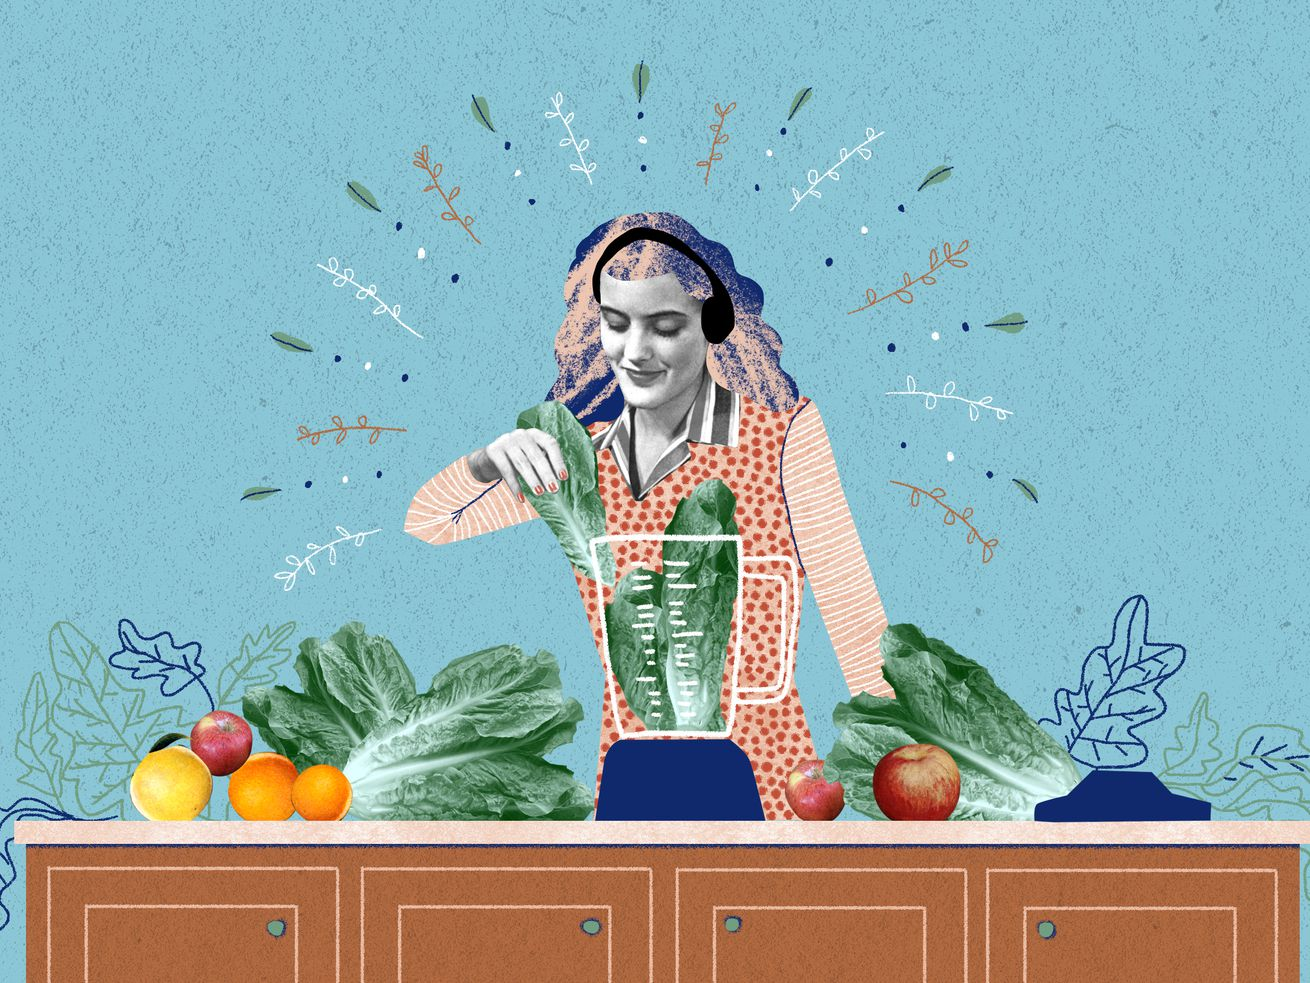 A woman standing at a kitchen island. She's surrounded by fresh produce and is happily placing vegetables in a still blender while listening to music on headphones. Illustration.